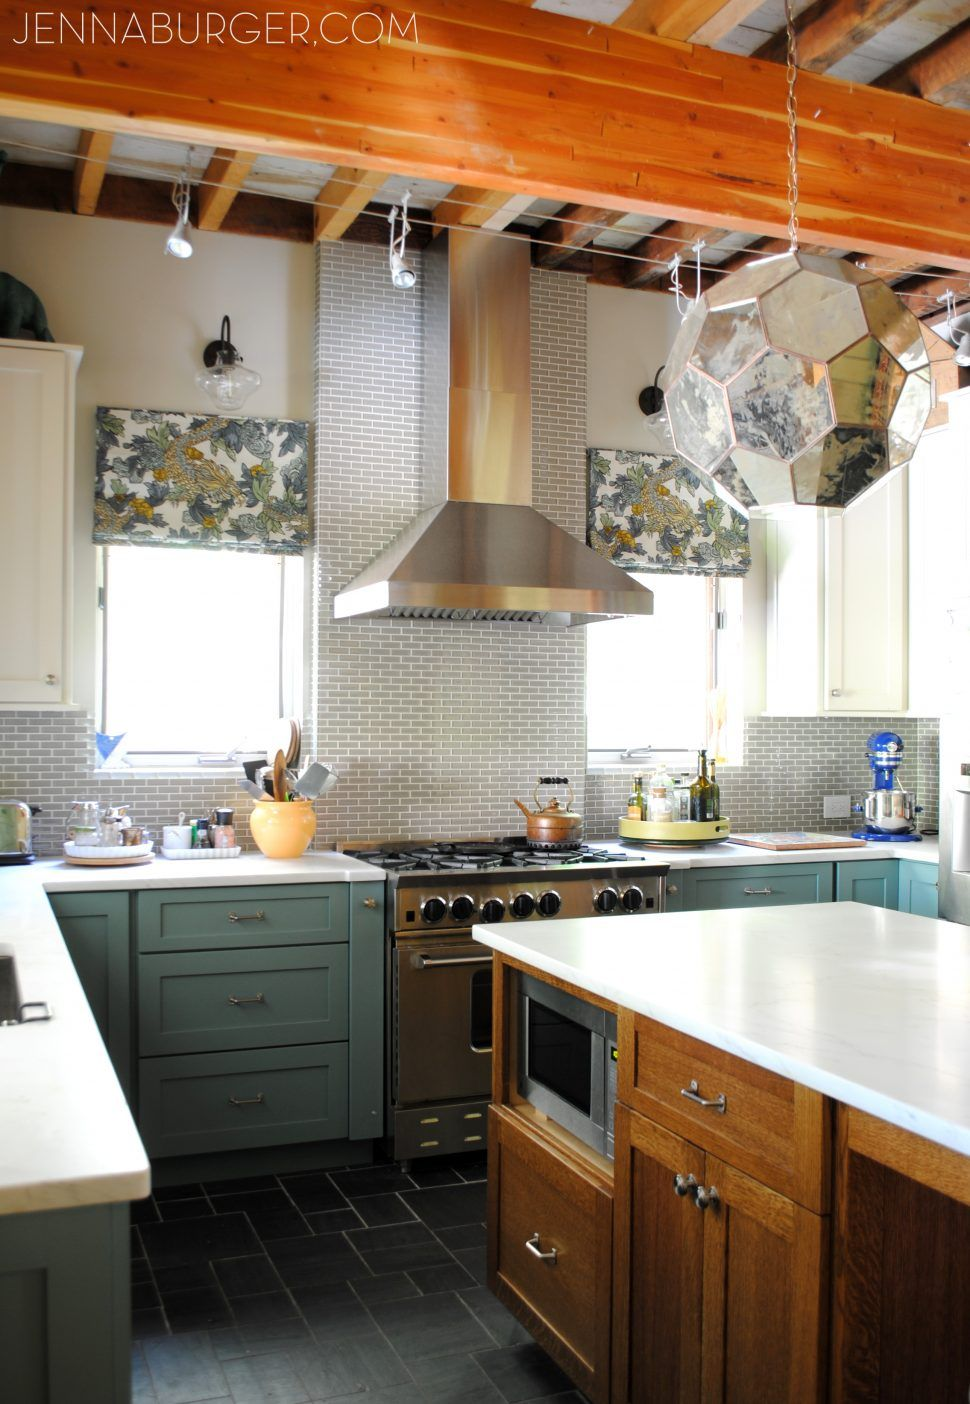 color trends eclectic kitchen living room kitchen complete kitchen remodel on kitchen decor trends id=46164